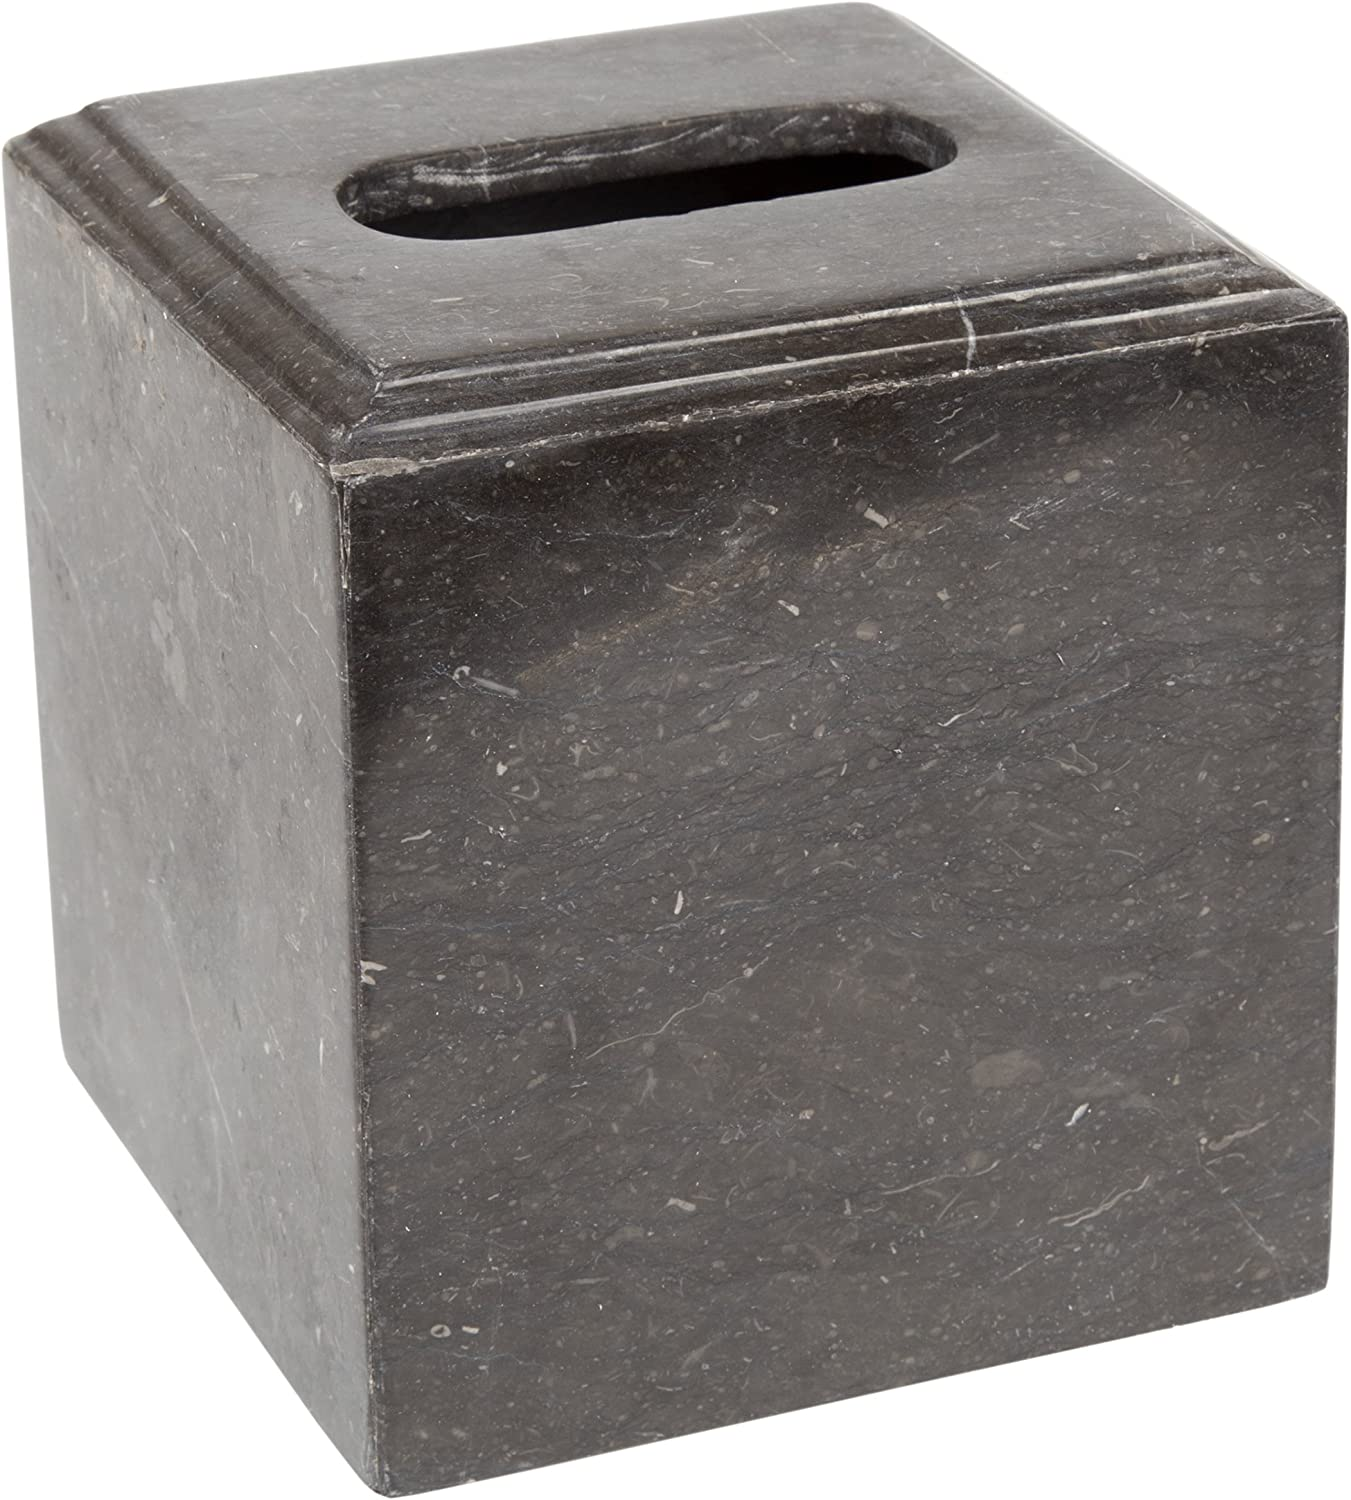 Creative Home Tissue Box Holder Charcoal Marble Bath Accessories